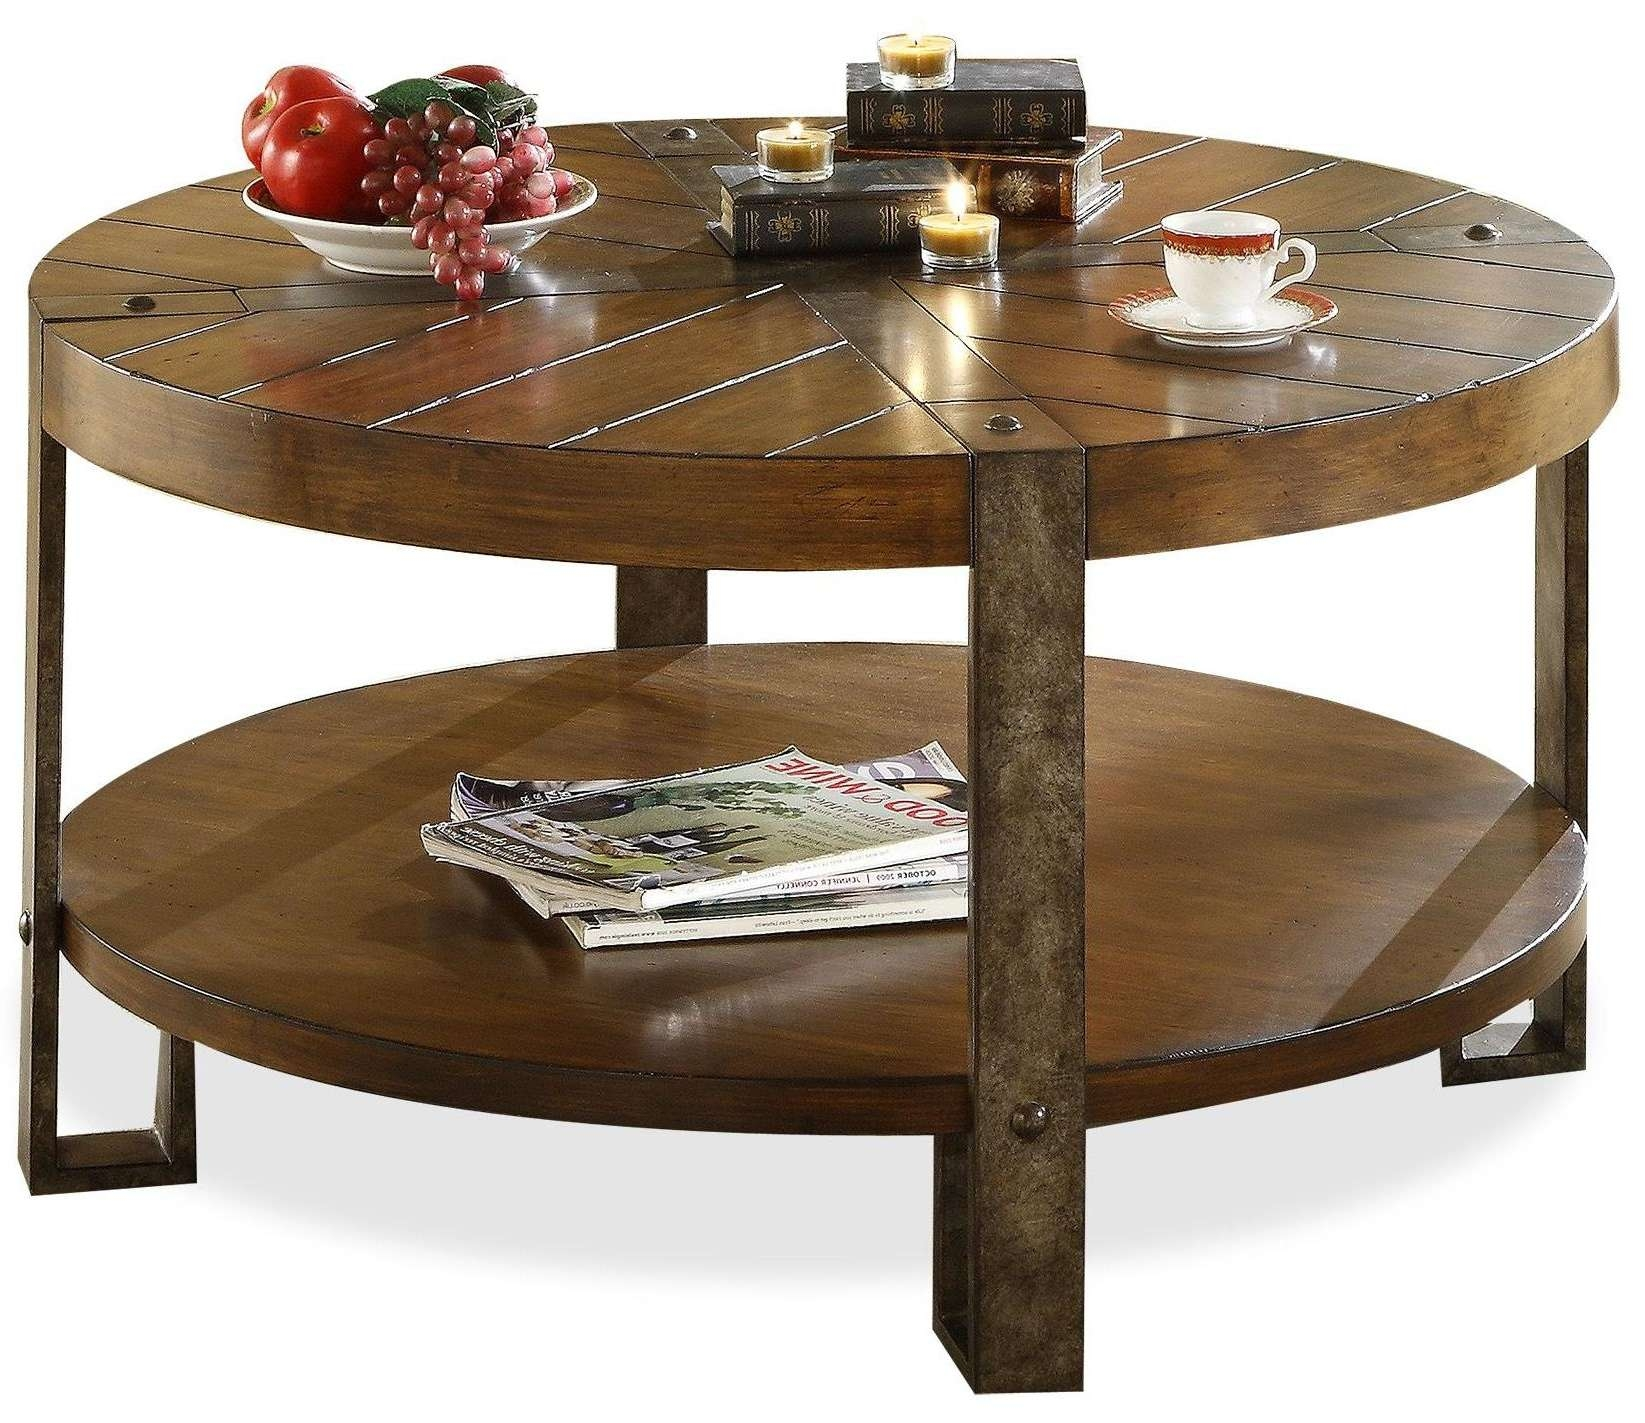 Coffee Tables : Industrial Round Coffee Table Large Square Modern Throughout Most Recently Released Circular Coffee Tables With Storage (View 6 of 20)